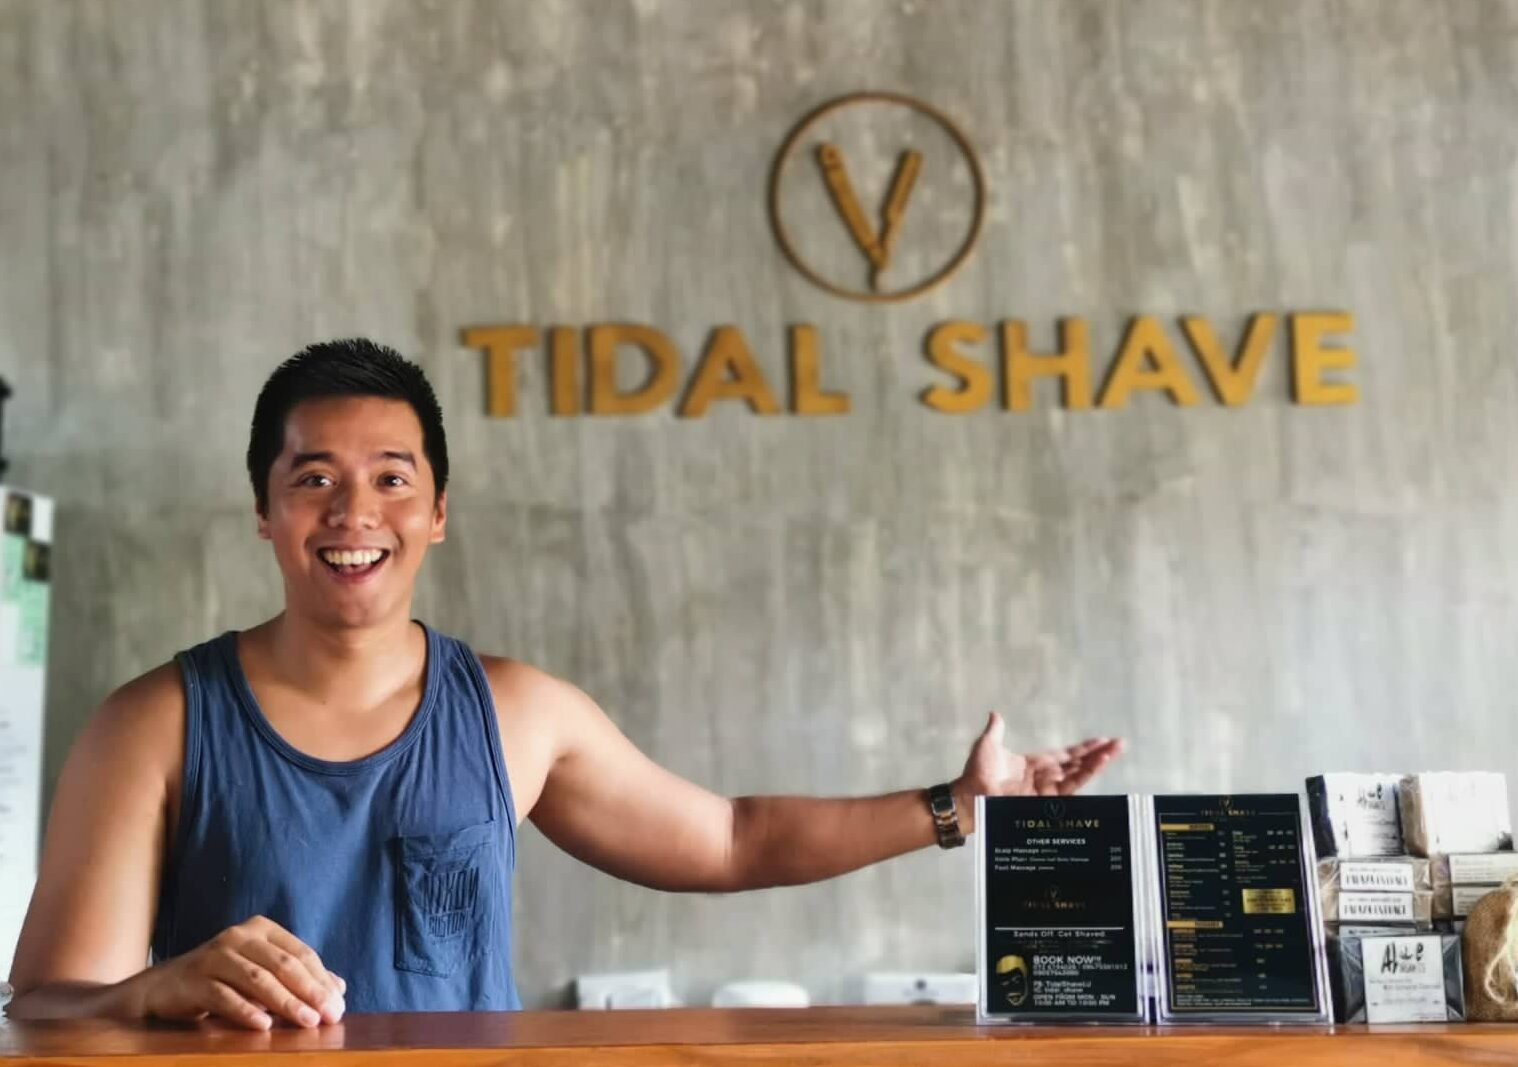 tidal shave barbershop in san juan la union